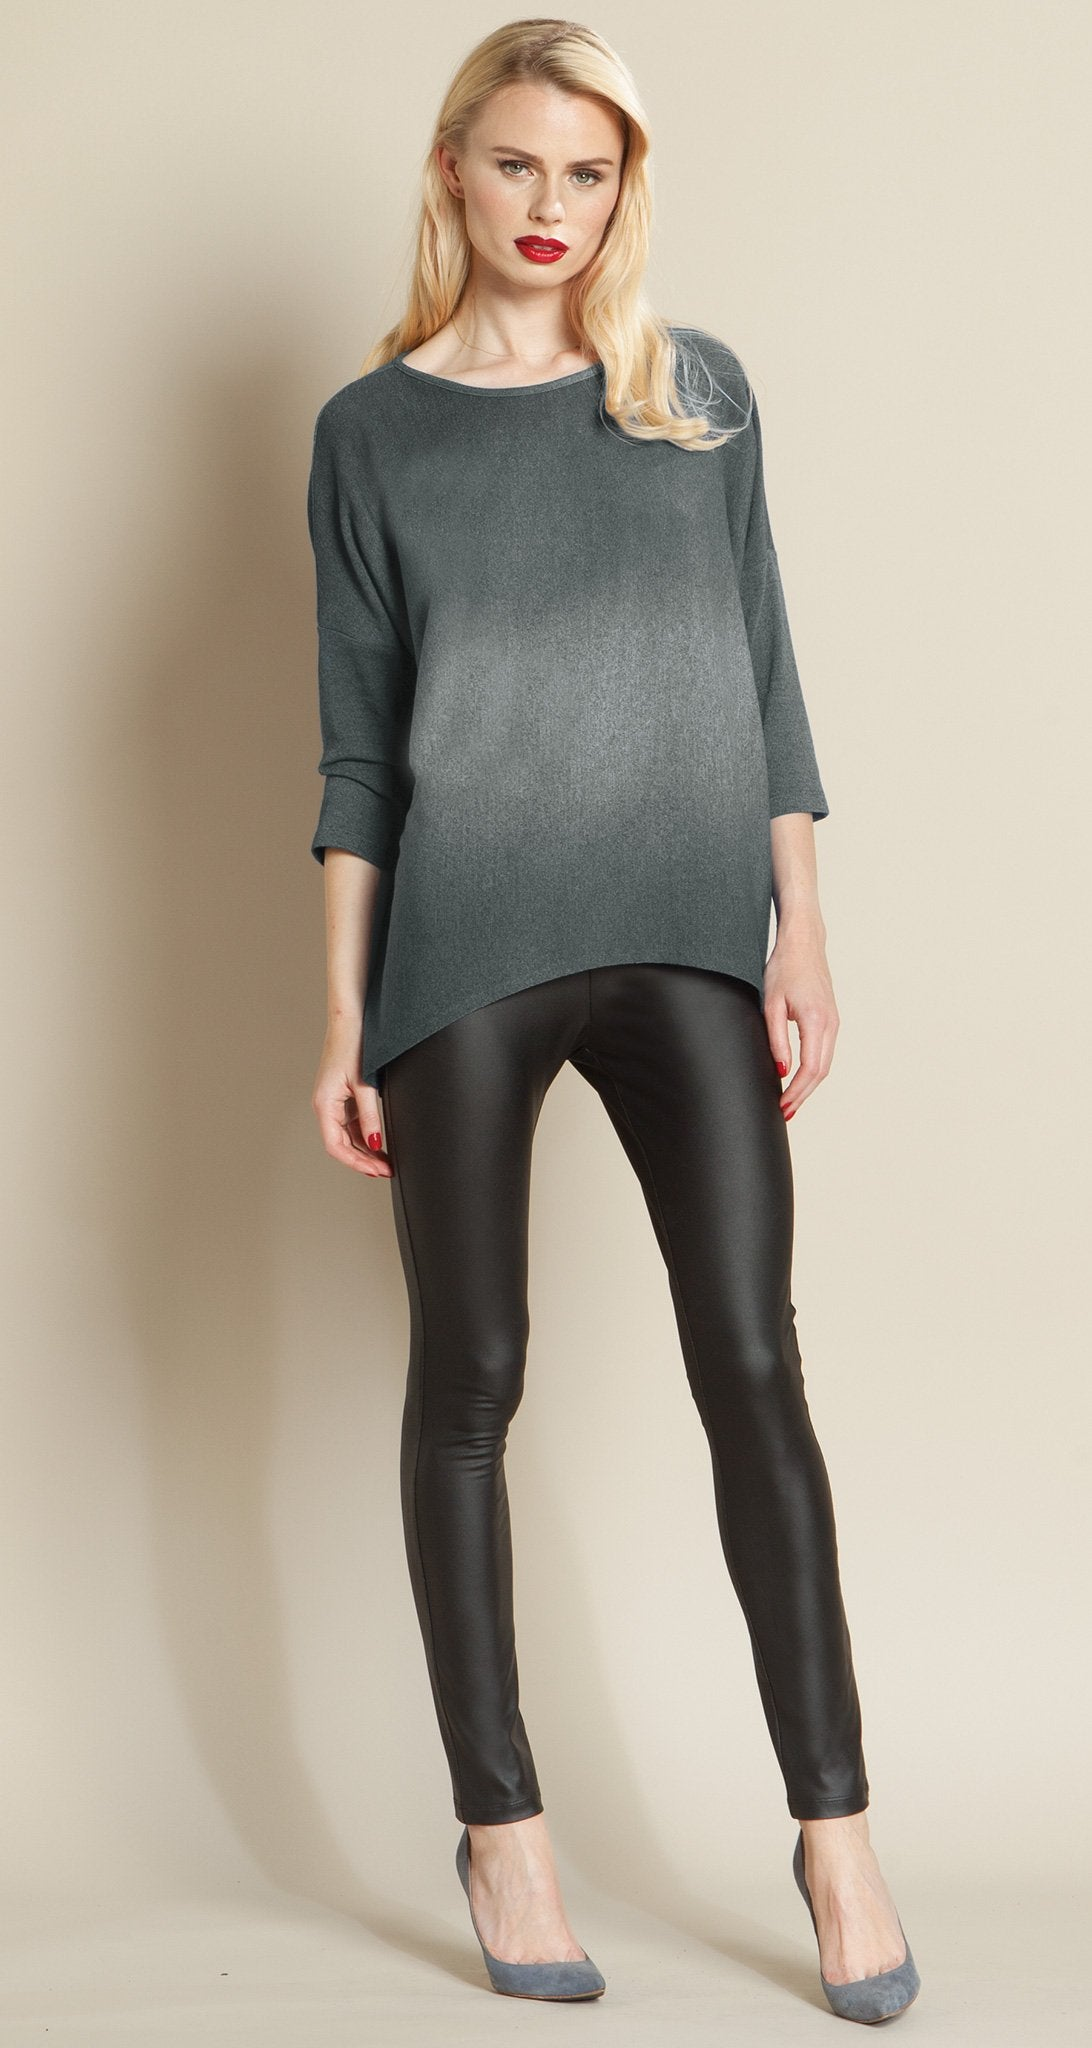 Ombre Modern Sweater Top - Charcoal - Clara Sunwoo